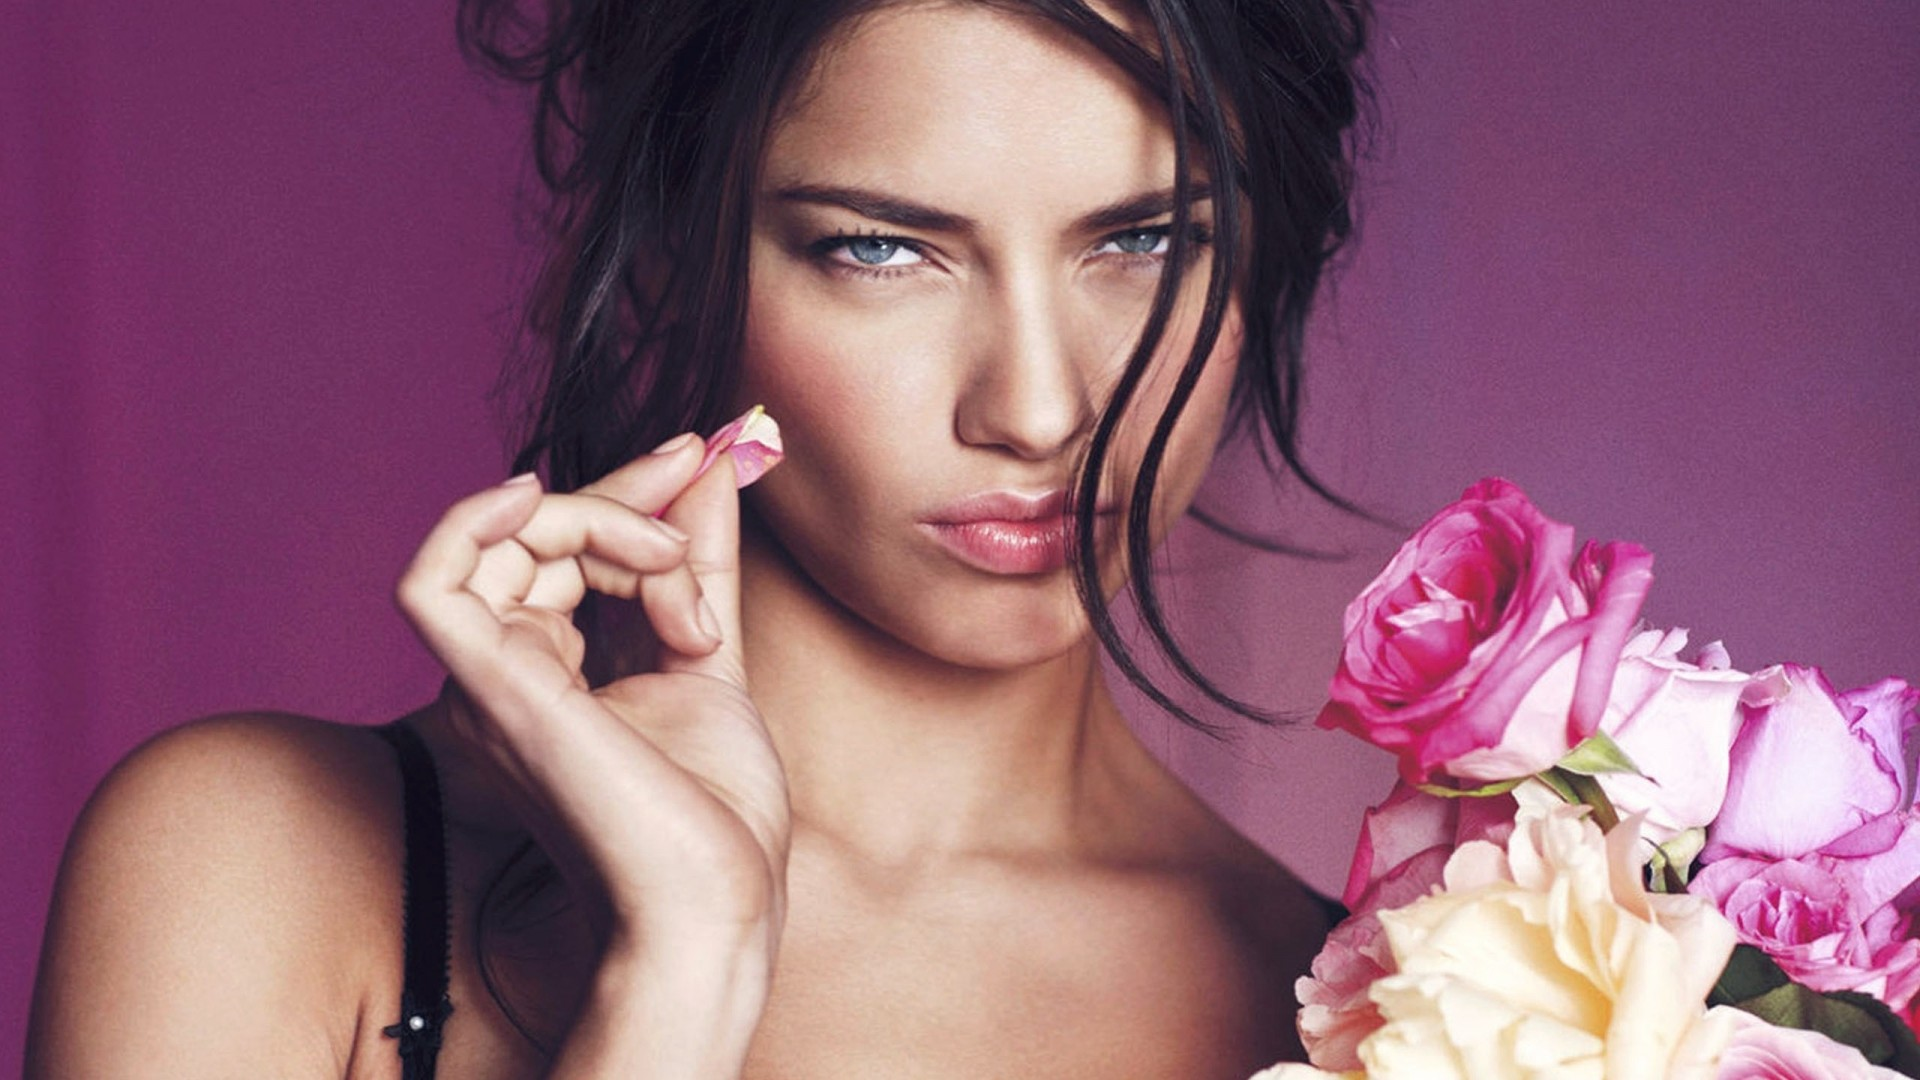 Adriana Lima, Victoria's Secret Angel, girl, pink, portrait (horizontal)